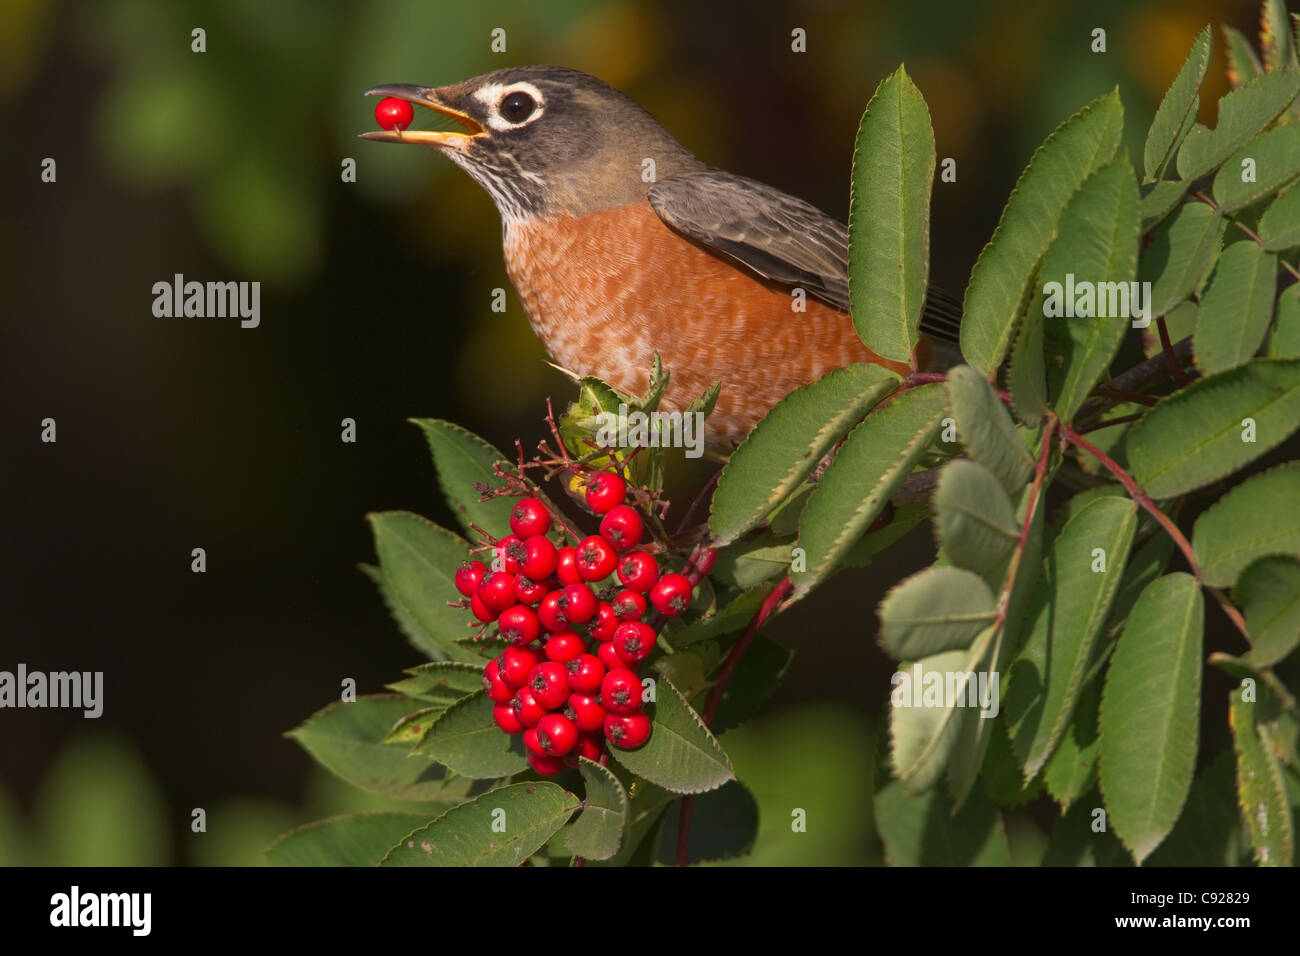 American Robin perched on branch eating a Mountain Ash berry, Cordova, Southcentral Alaska, Autumn - Stock Image